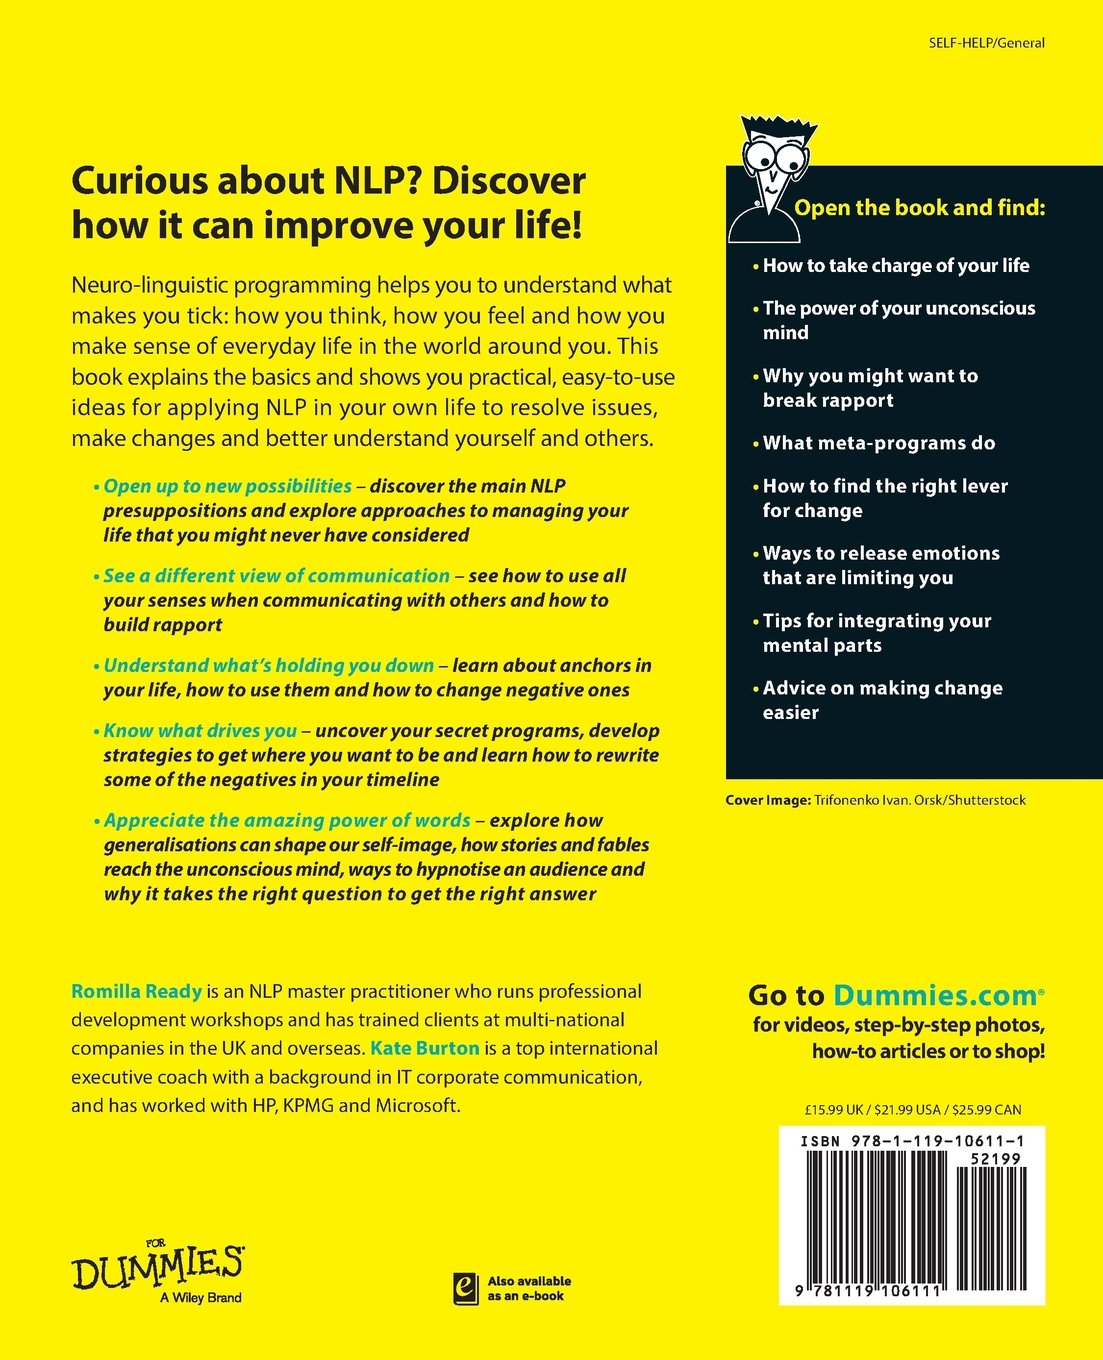 Neuro linguistic programming for dummies livros na amazon brasil neuro linguistic programming for dummies livros na amazon brasil 9781119106111 fandeluxe Choice Image